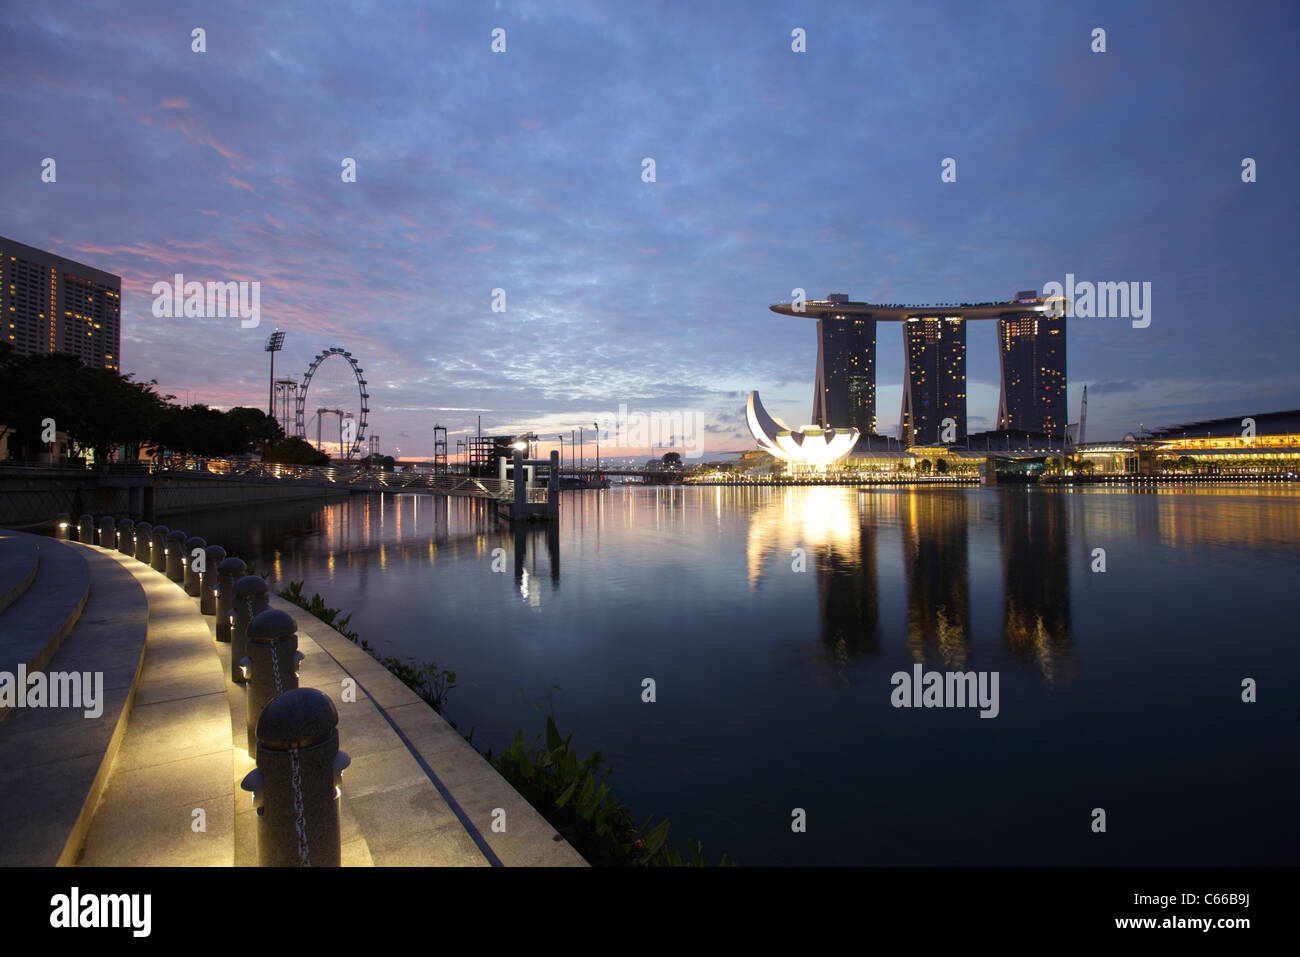 View of the the bay and the Marina Bay Sand Hotel, Singapore - Stock Image